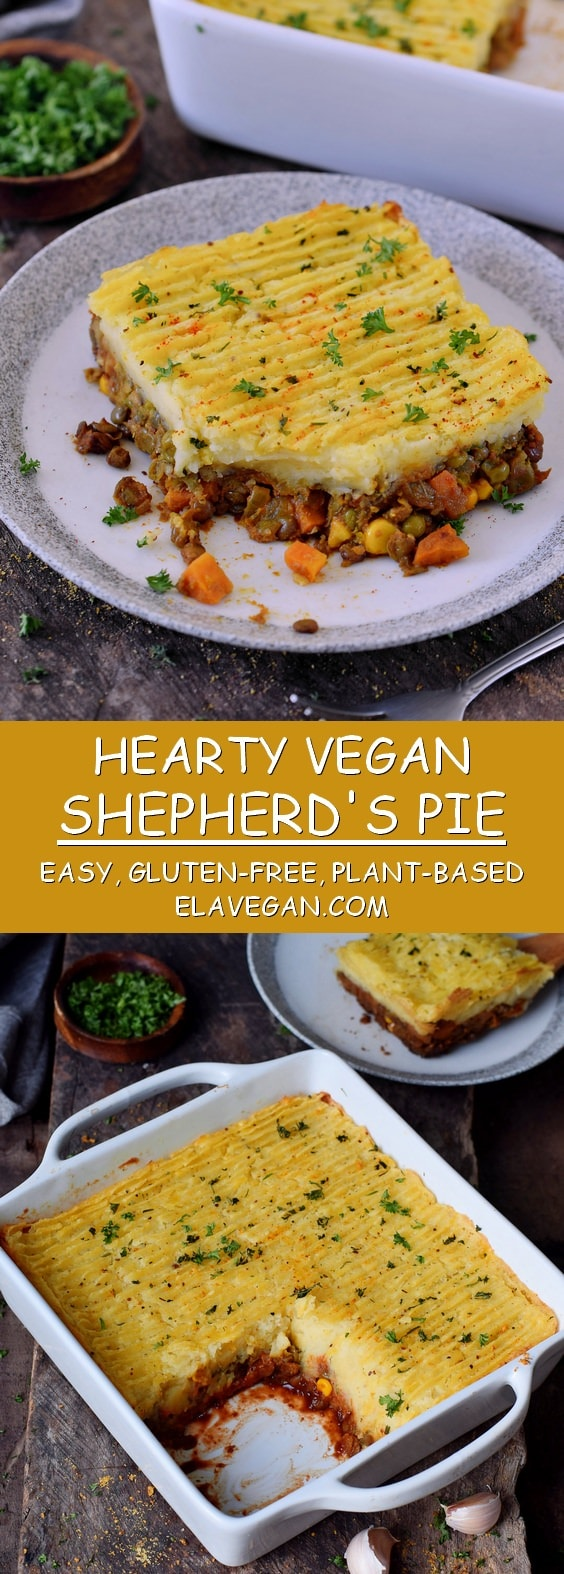 vegan shepherds pie with lentils mashed potatoes gluten-free recipe